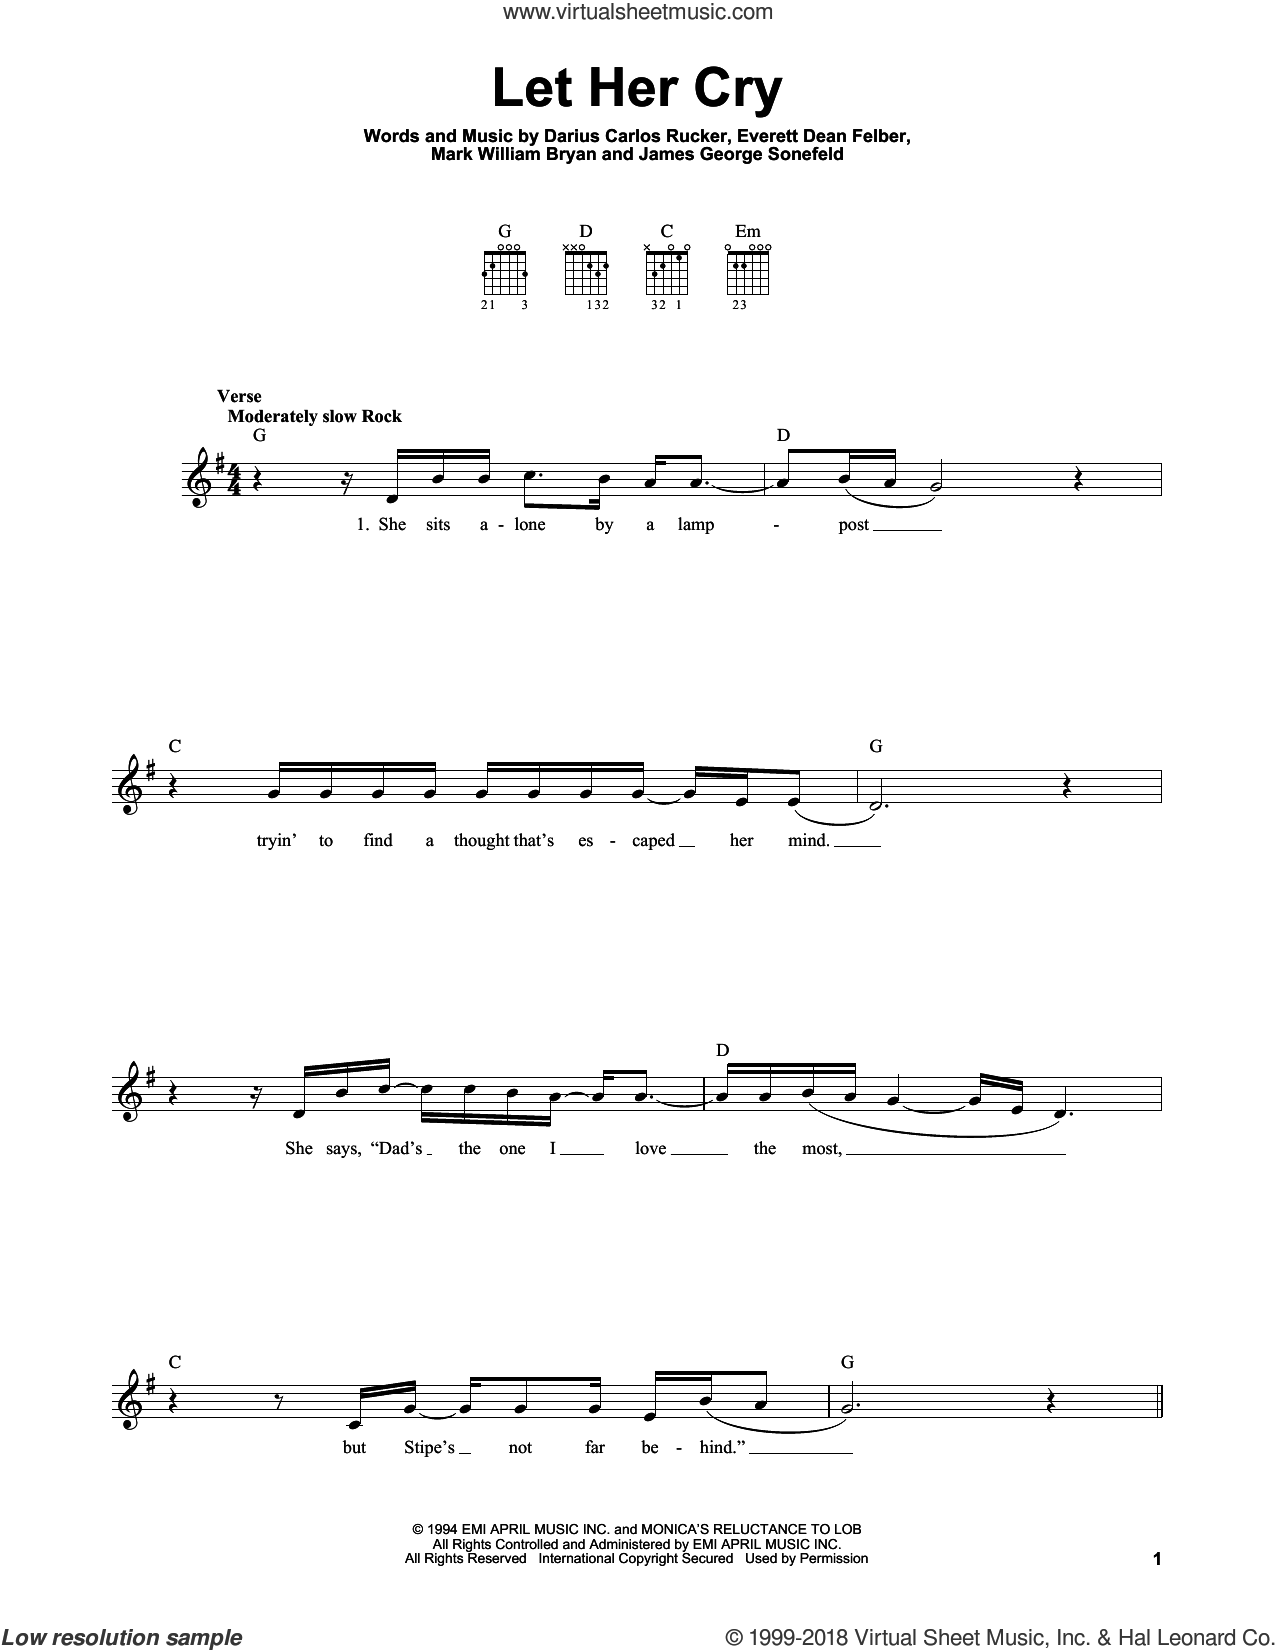 Let Her Cry sheet music for guitar solo (chords) by Hootie & The Blowfish, Darius Carlos Rucker, Everett Dean Felber, James George Sonefeld and Mark William Bryan, easy guitar (chords)